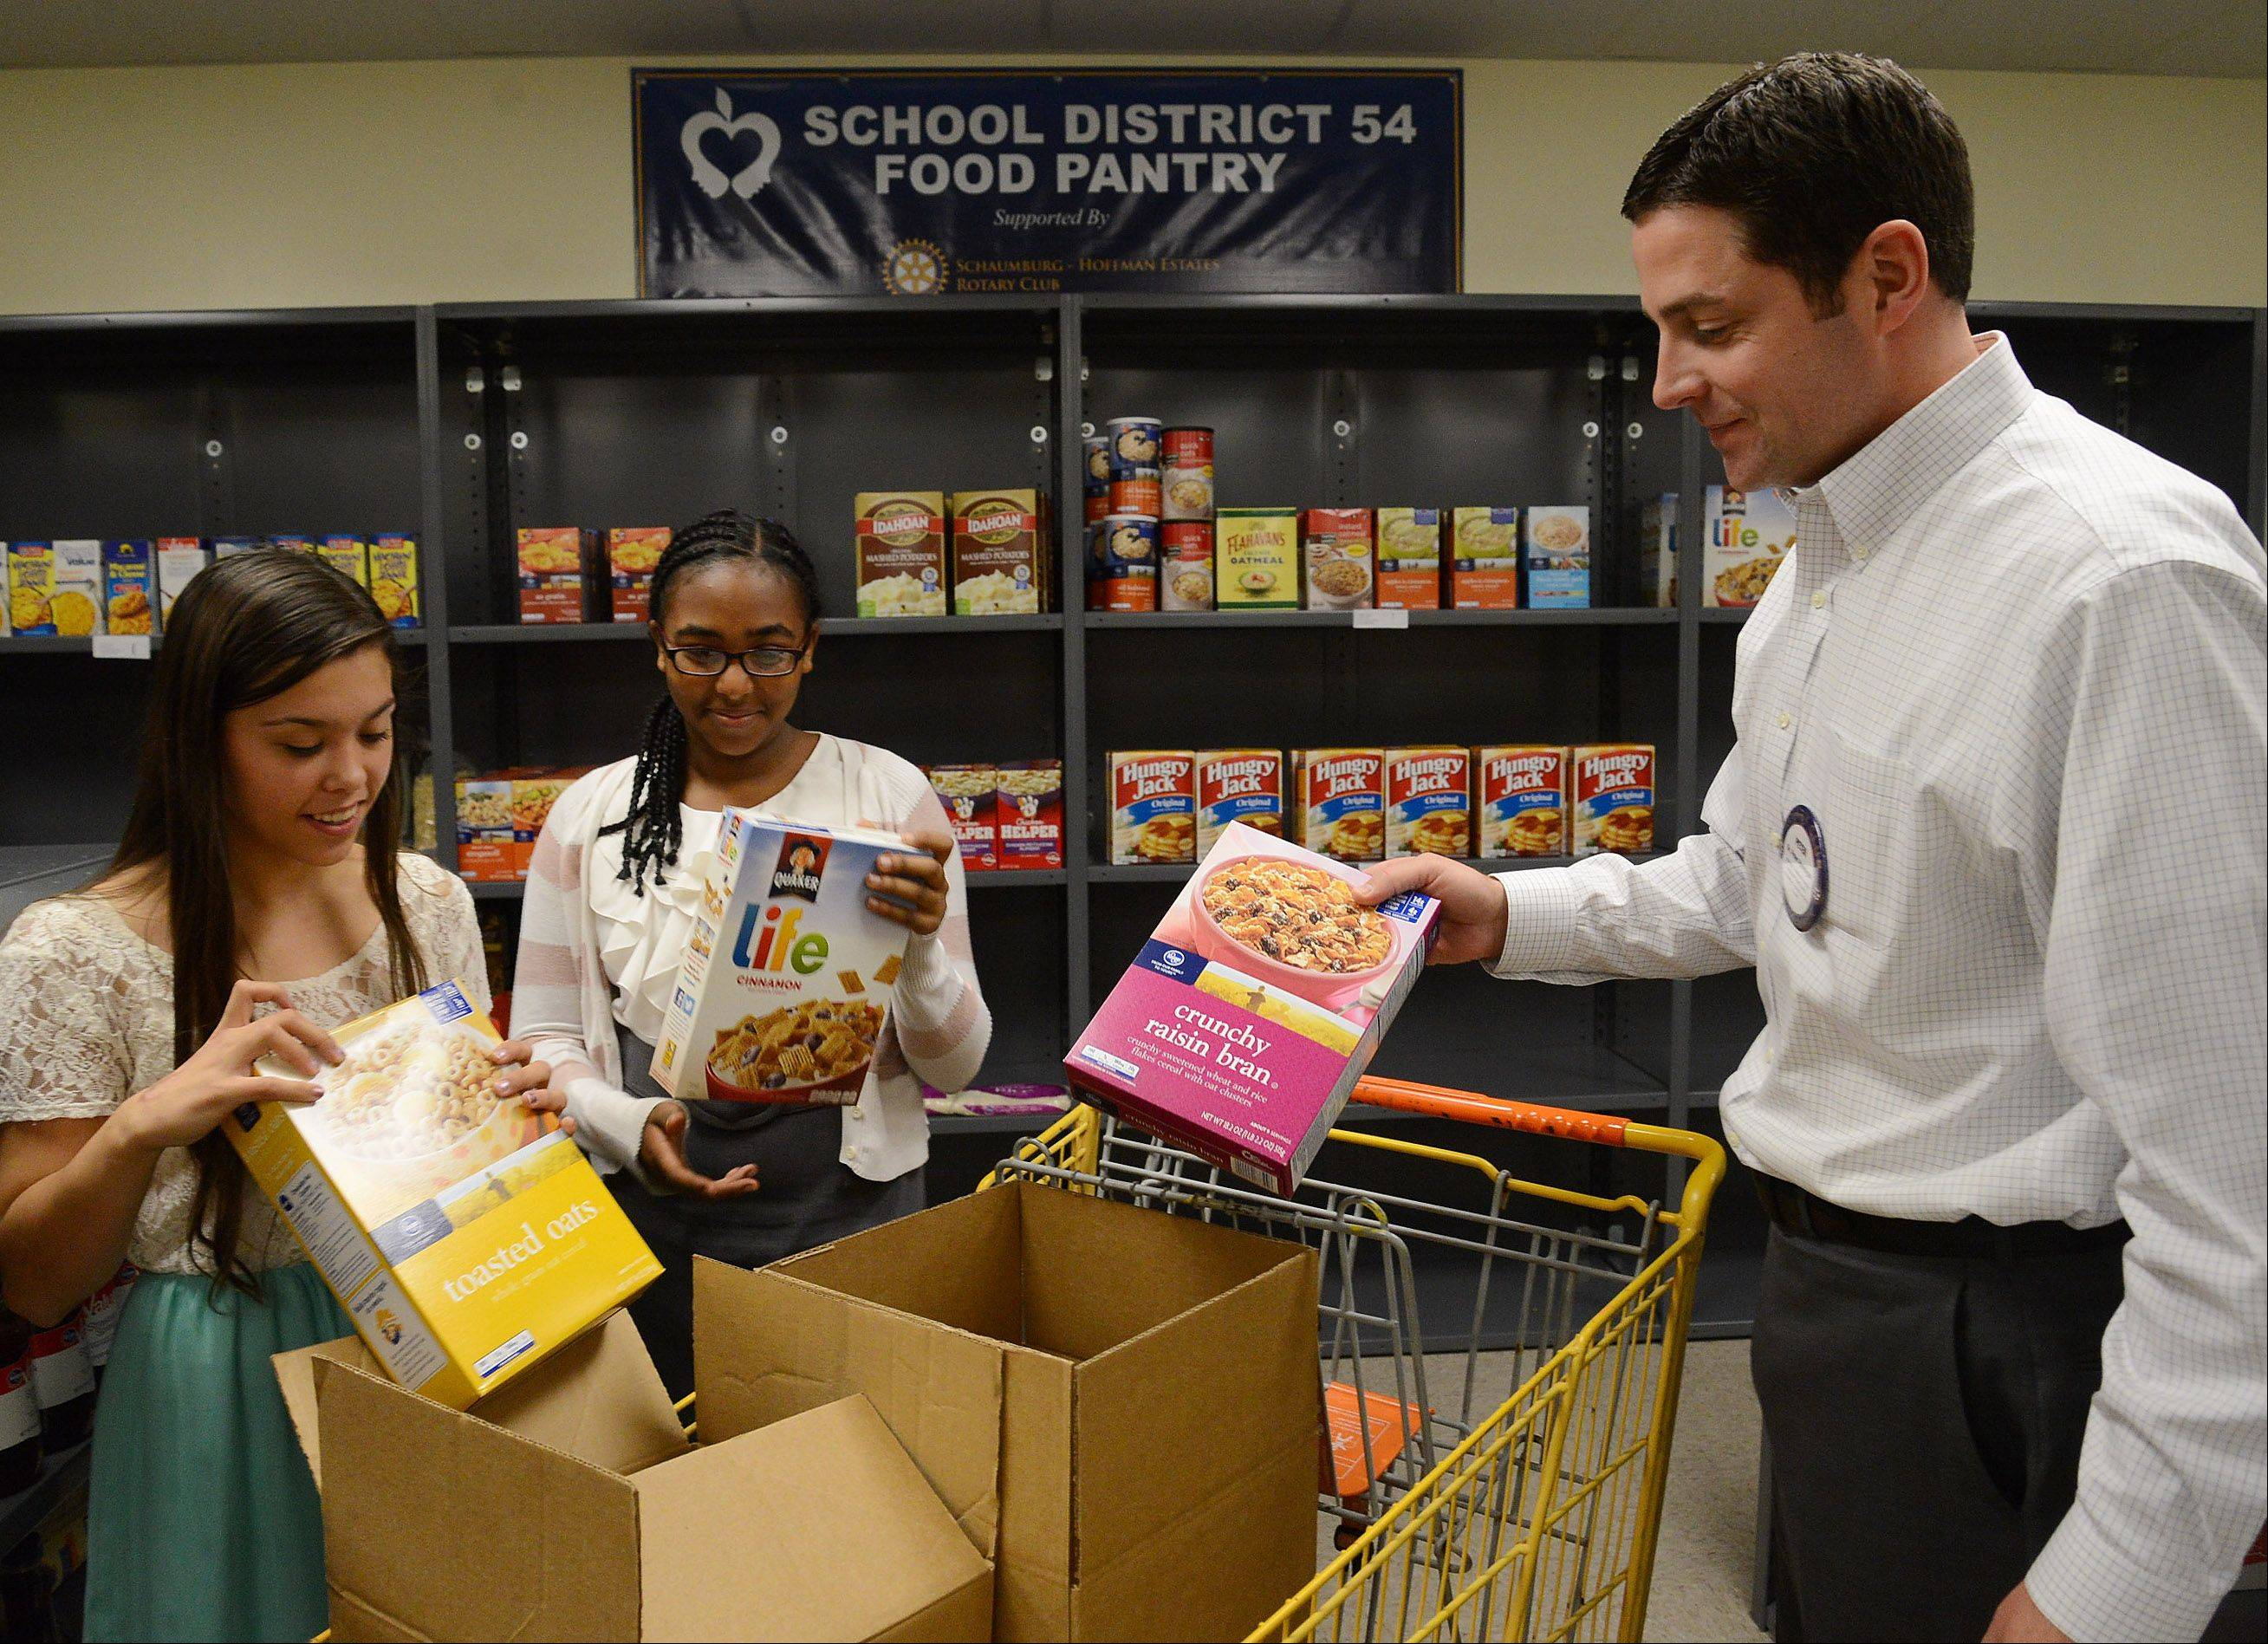 Keller eighth-graders Morgan Krug, left, and Keneni Godana help Rotary member and District 54 Assistant Superintendent Pete Hannigan stock shelves, as they get ready to open the food pantry.